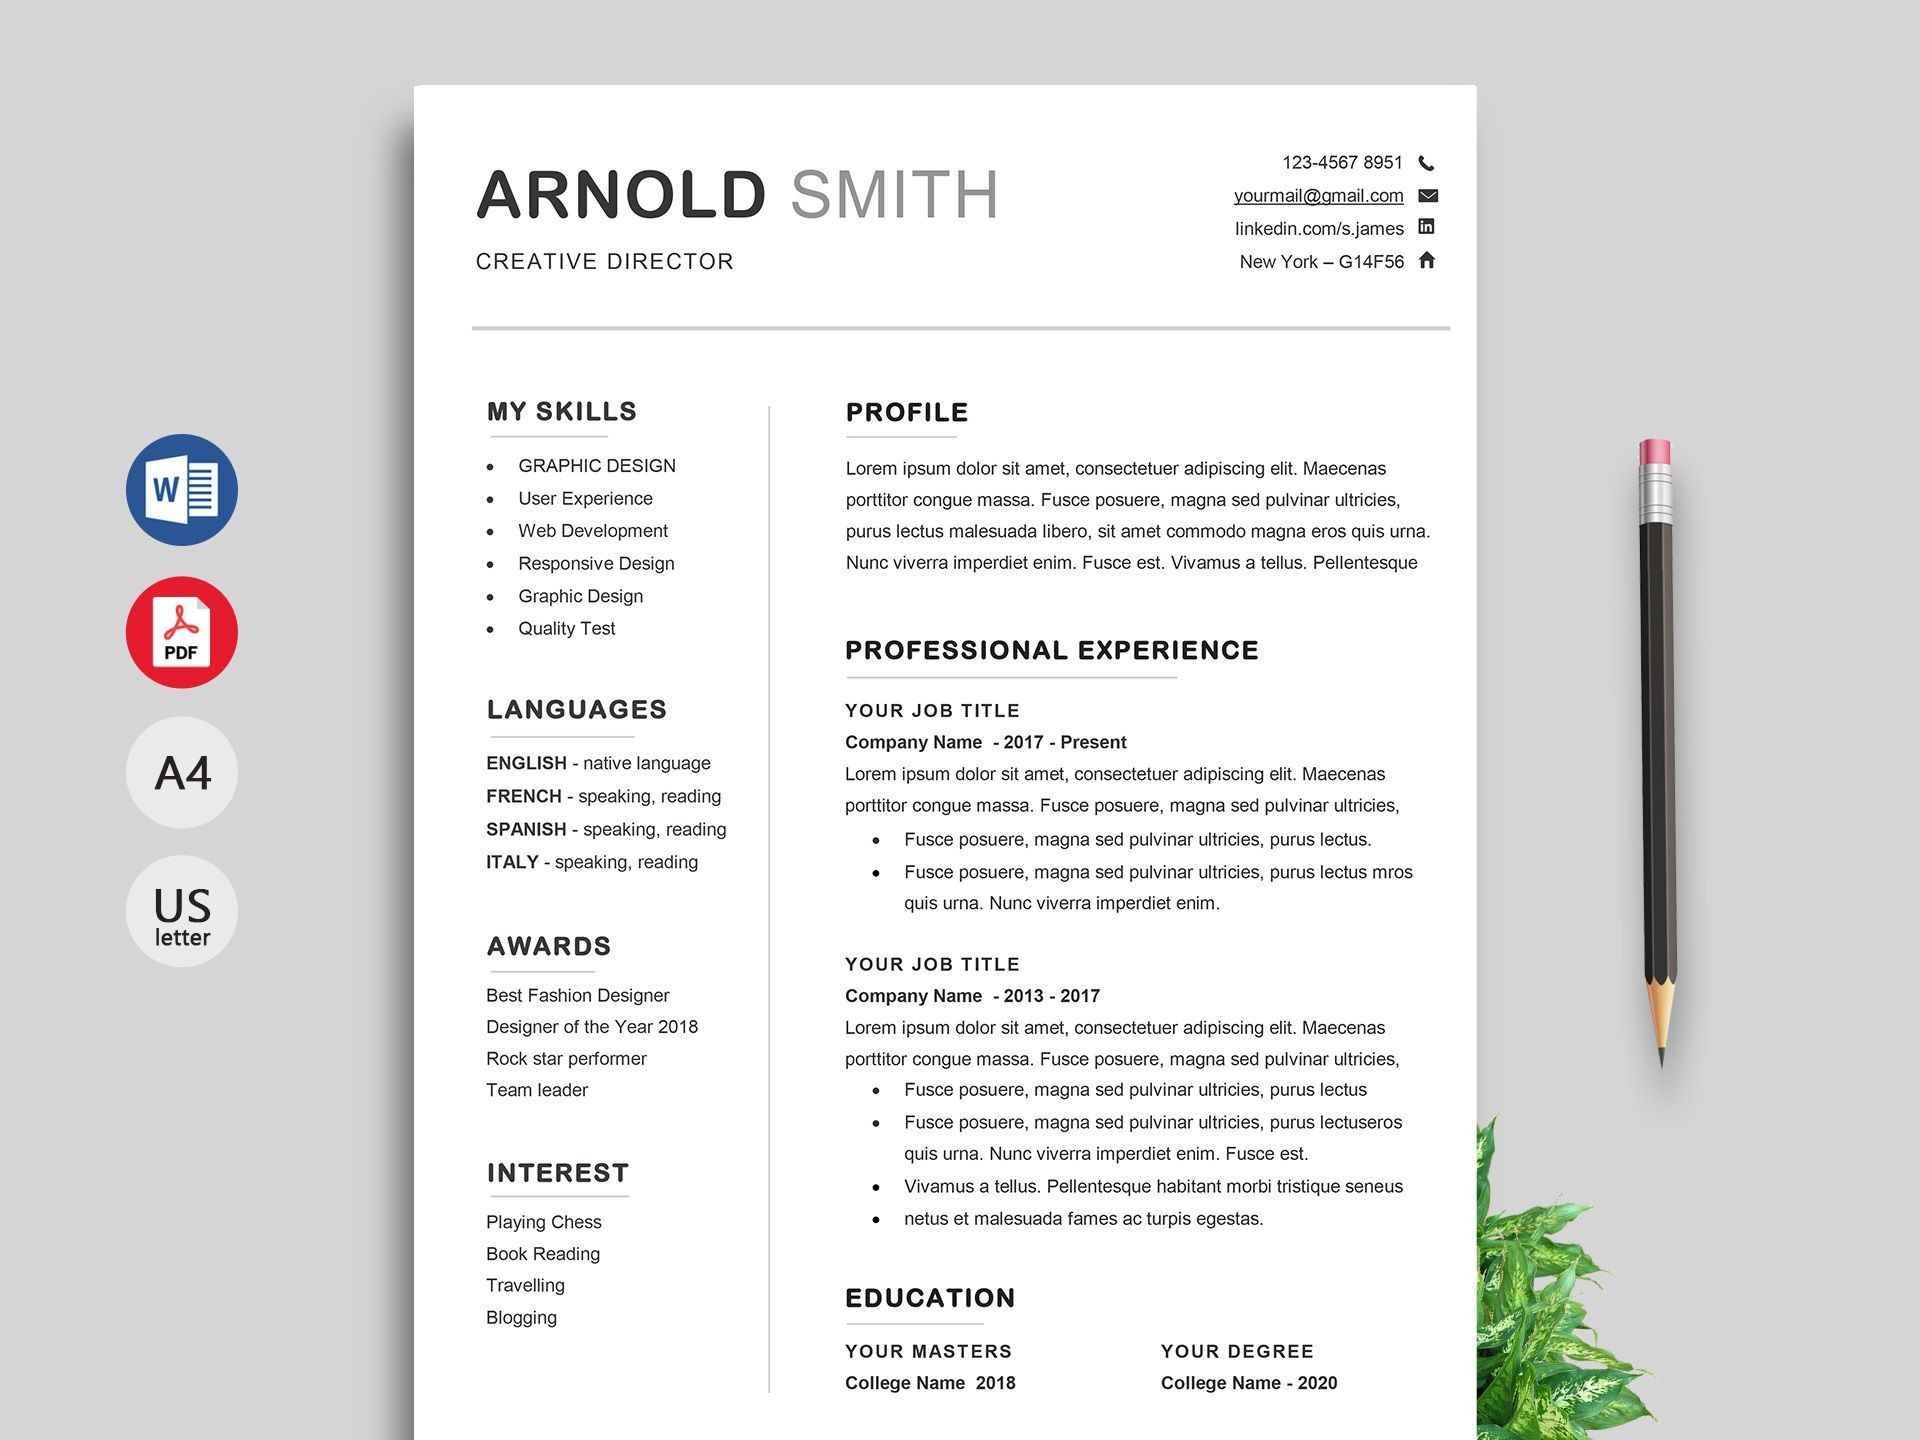 001 Imposing Free Resume Template To Download Design  Professional Format In M Word 2007 For Civil Engineer1920